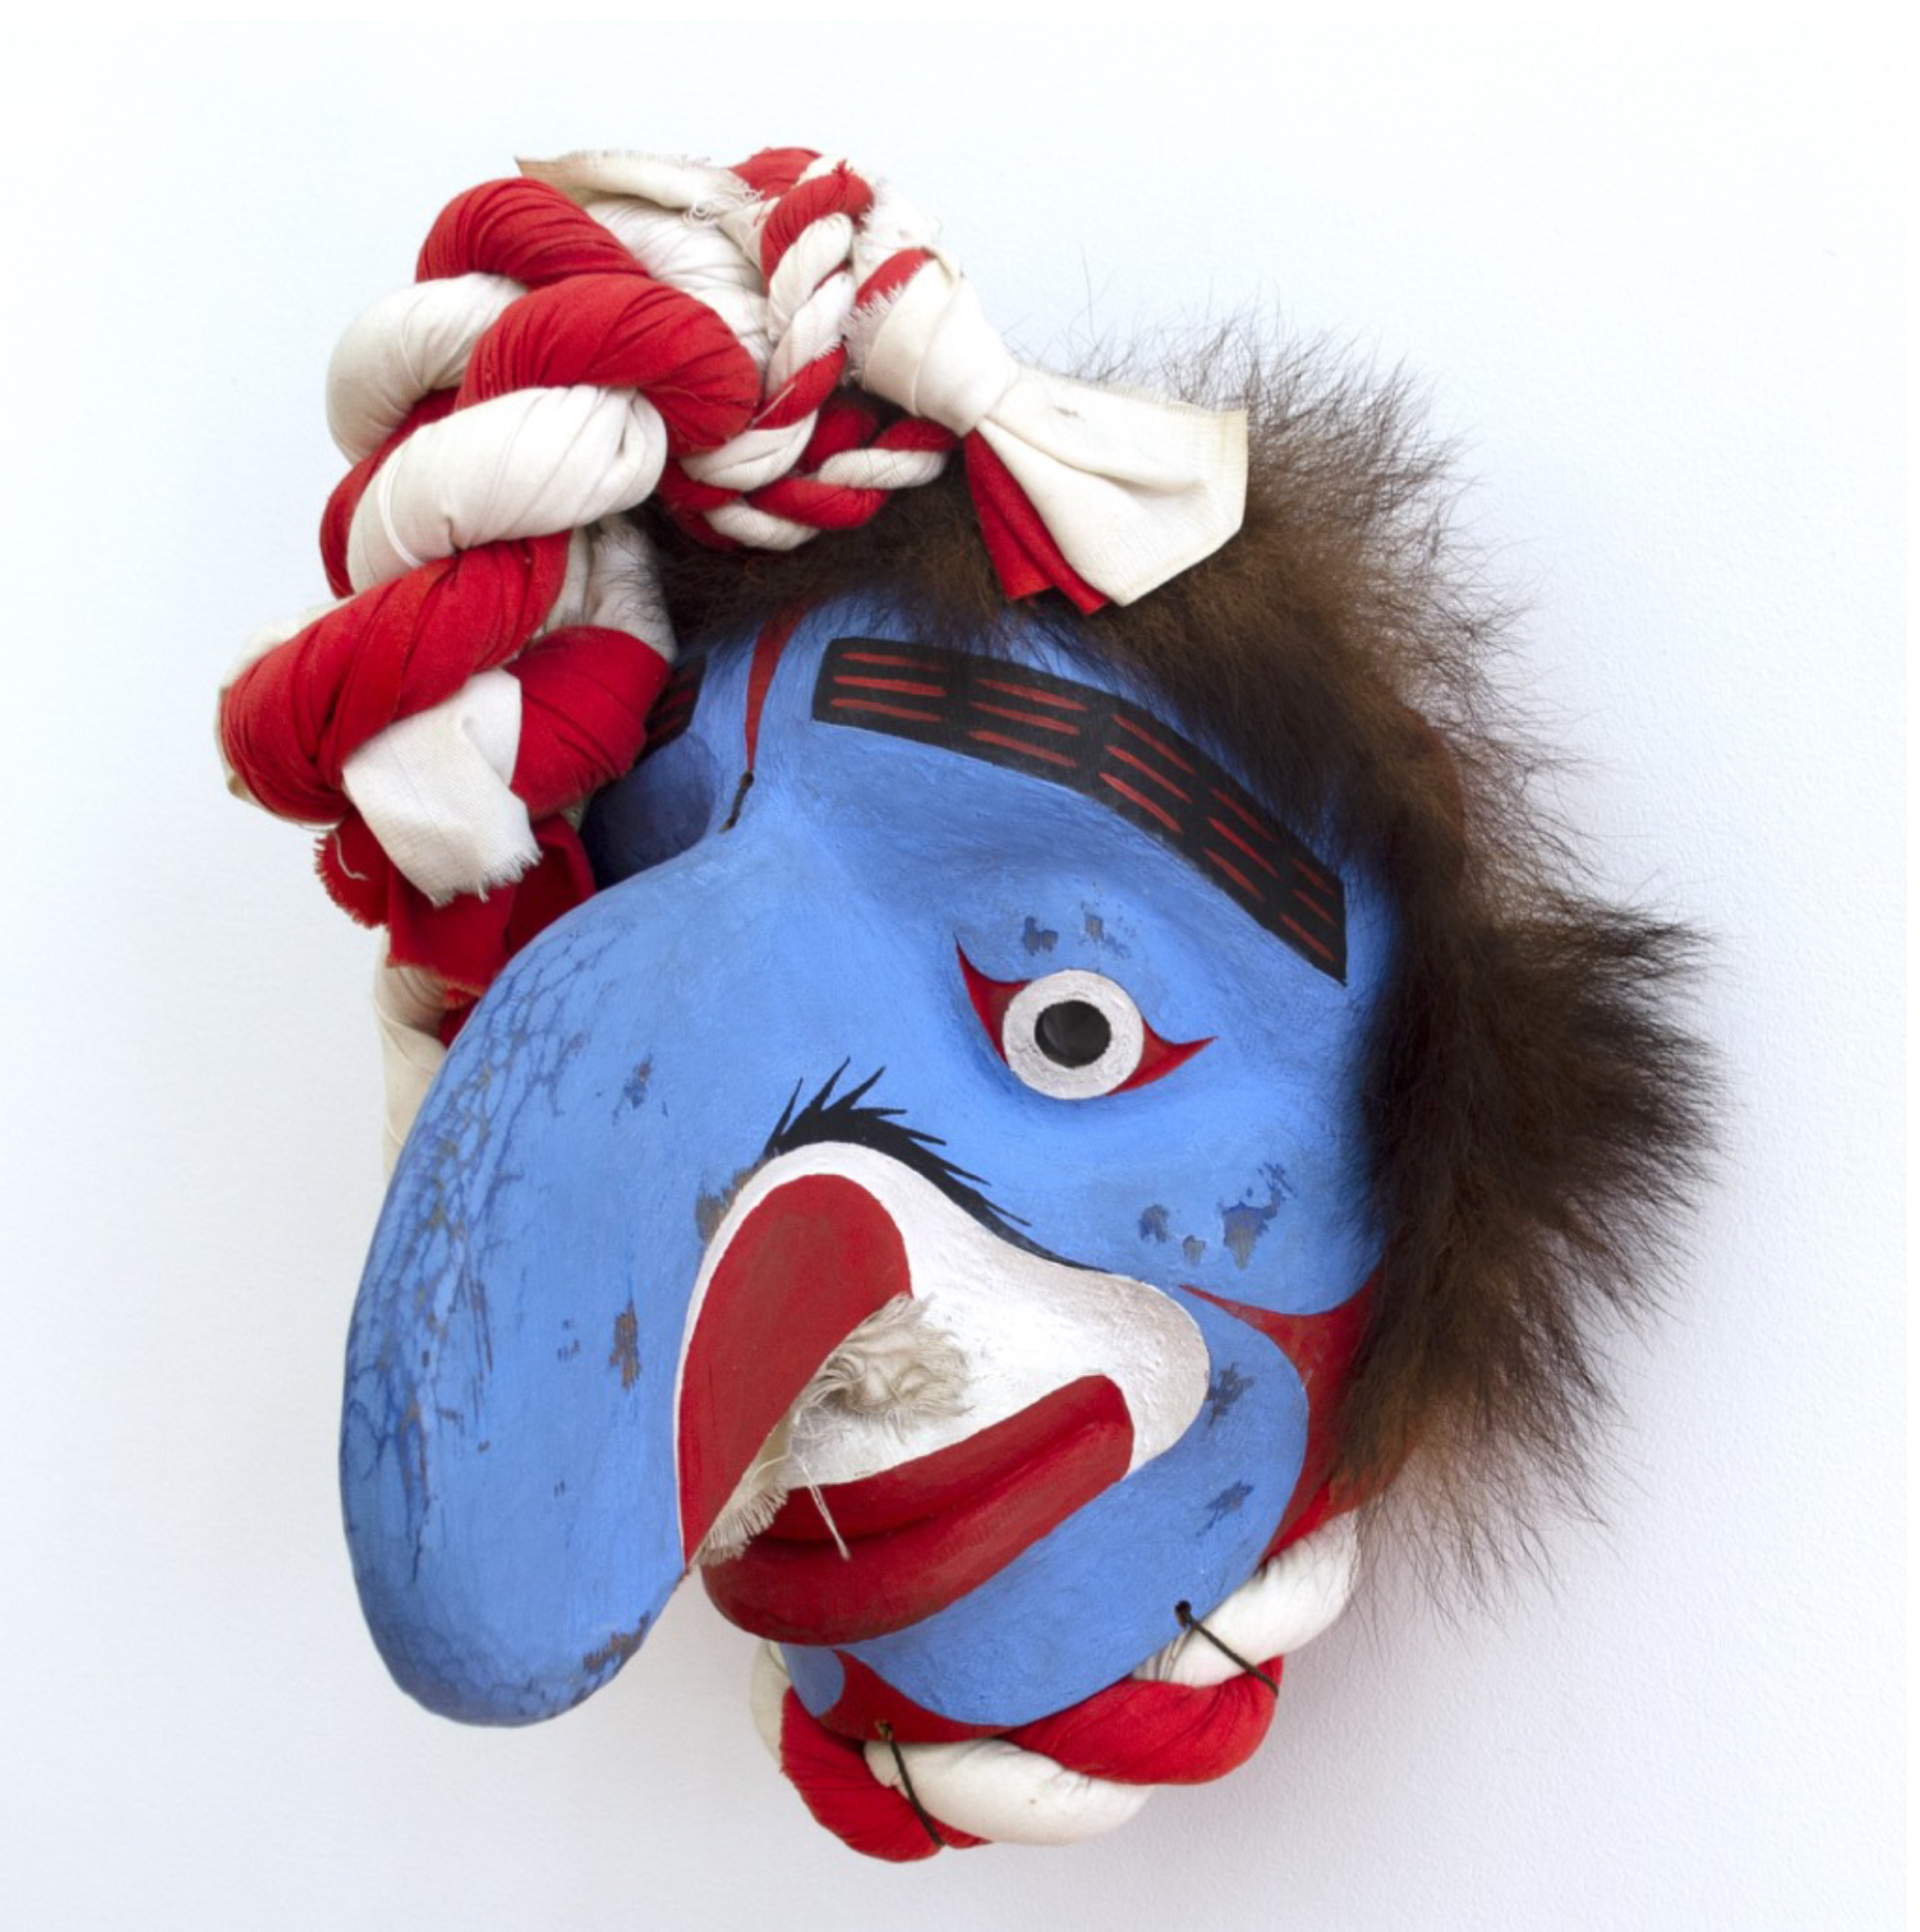 Nu-Tla-Ma (Fool Dancer), 1992